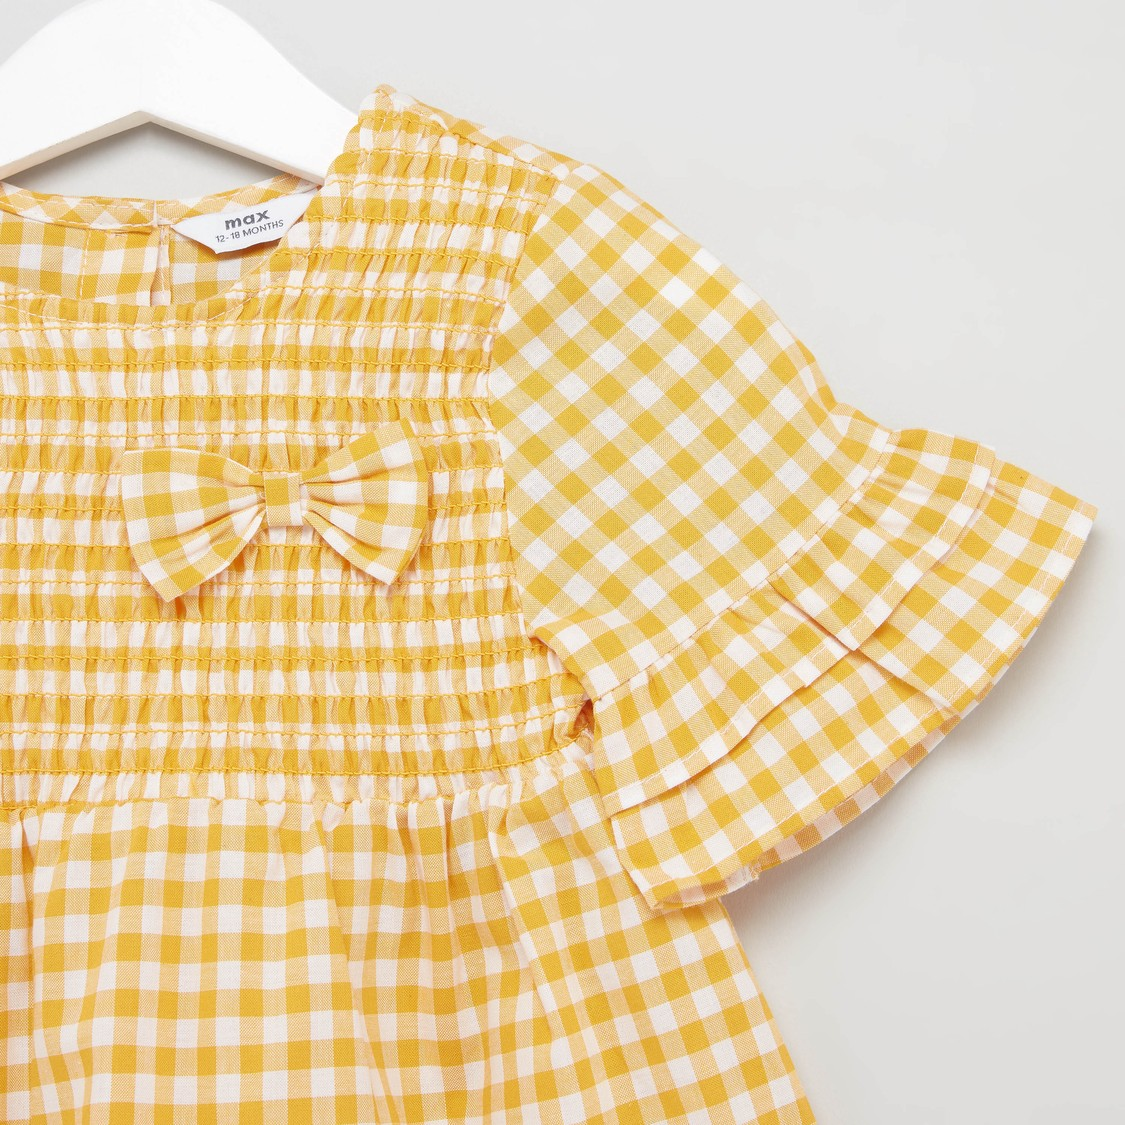 Chequered Gingham Top with Short Sleeves and Bow Applique